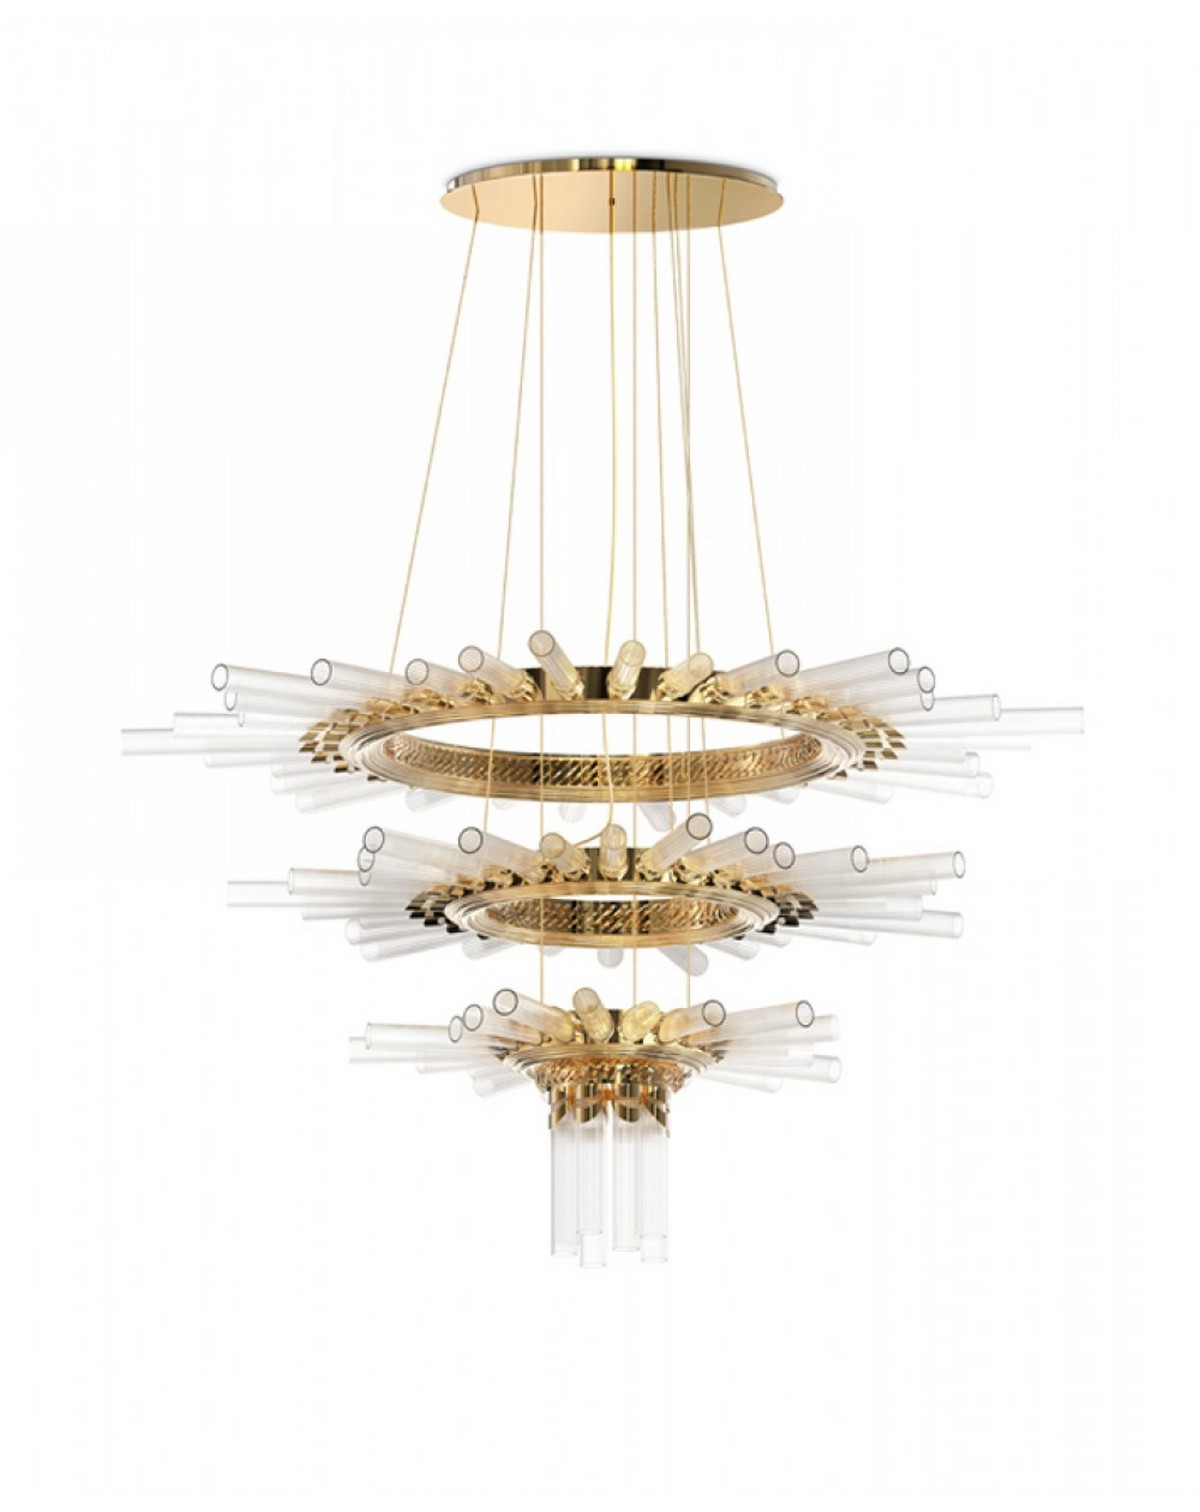 Dining Room Chandeliers To Enlight Your Soul (Part III) dining room chandeliers Dining Room Chandeliers To Enlight Your Soul (Part III) majestic